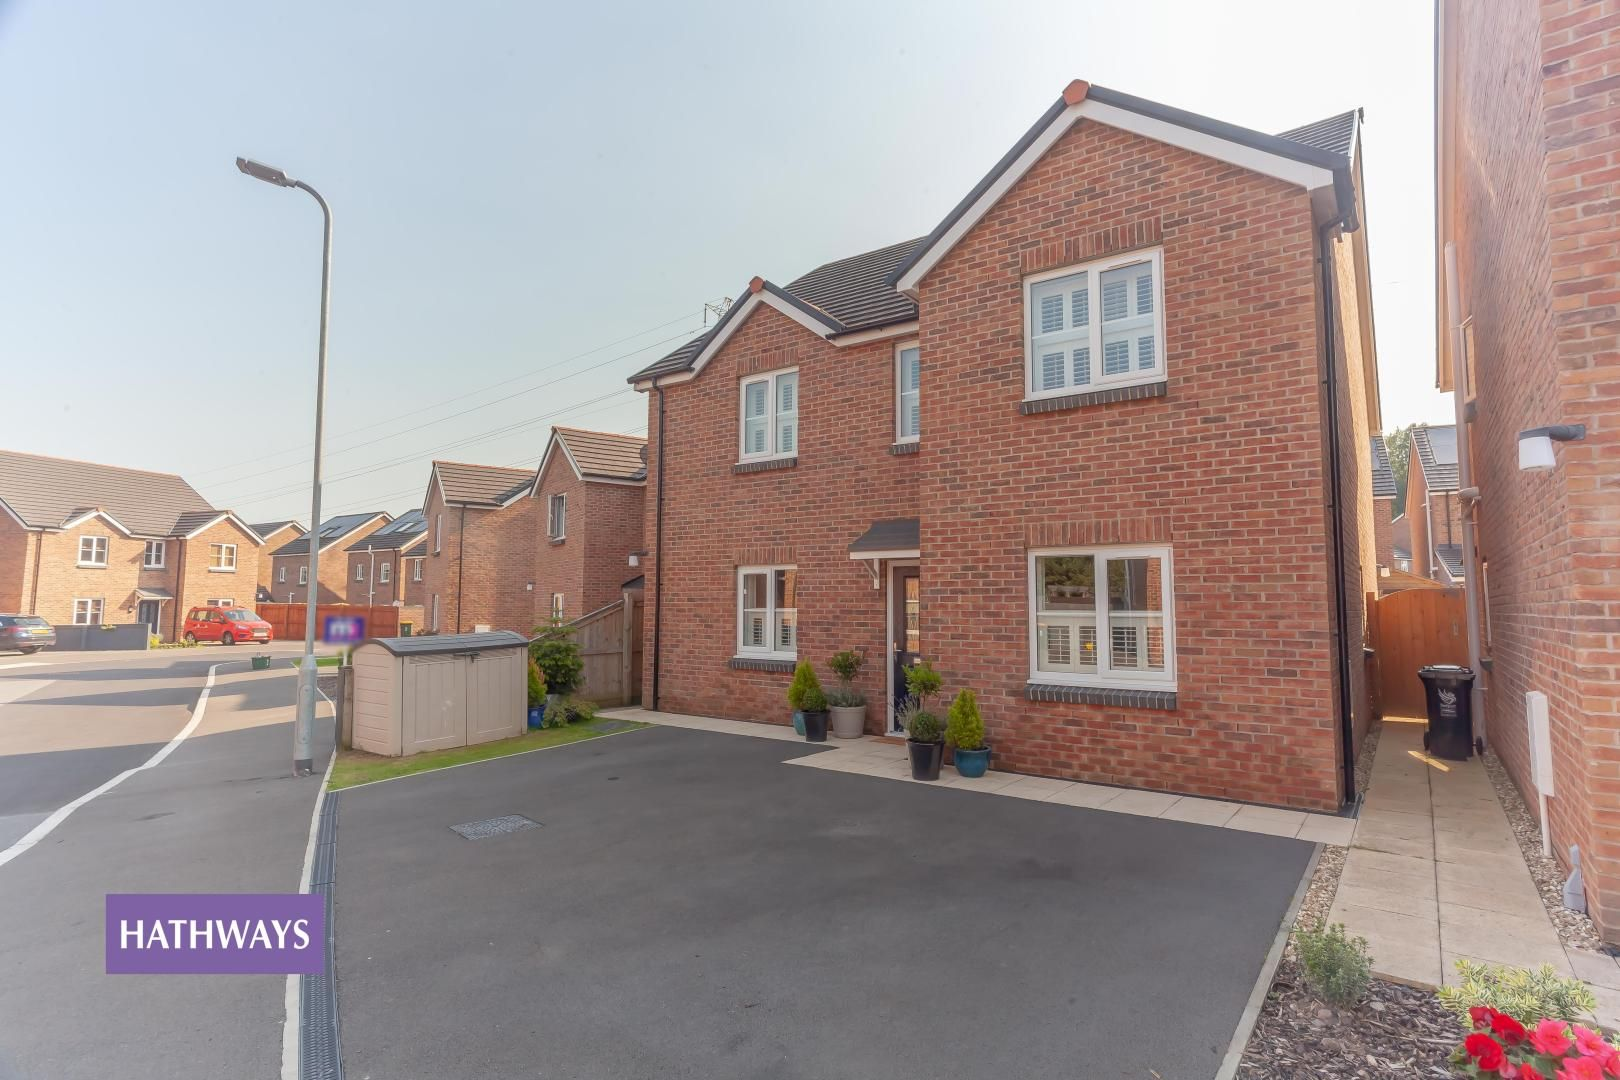 4 bed house for sale in Tadia Way, NP18